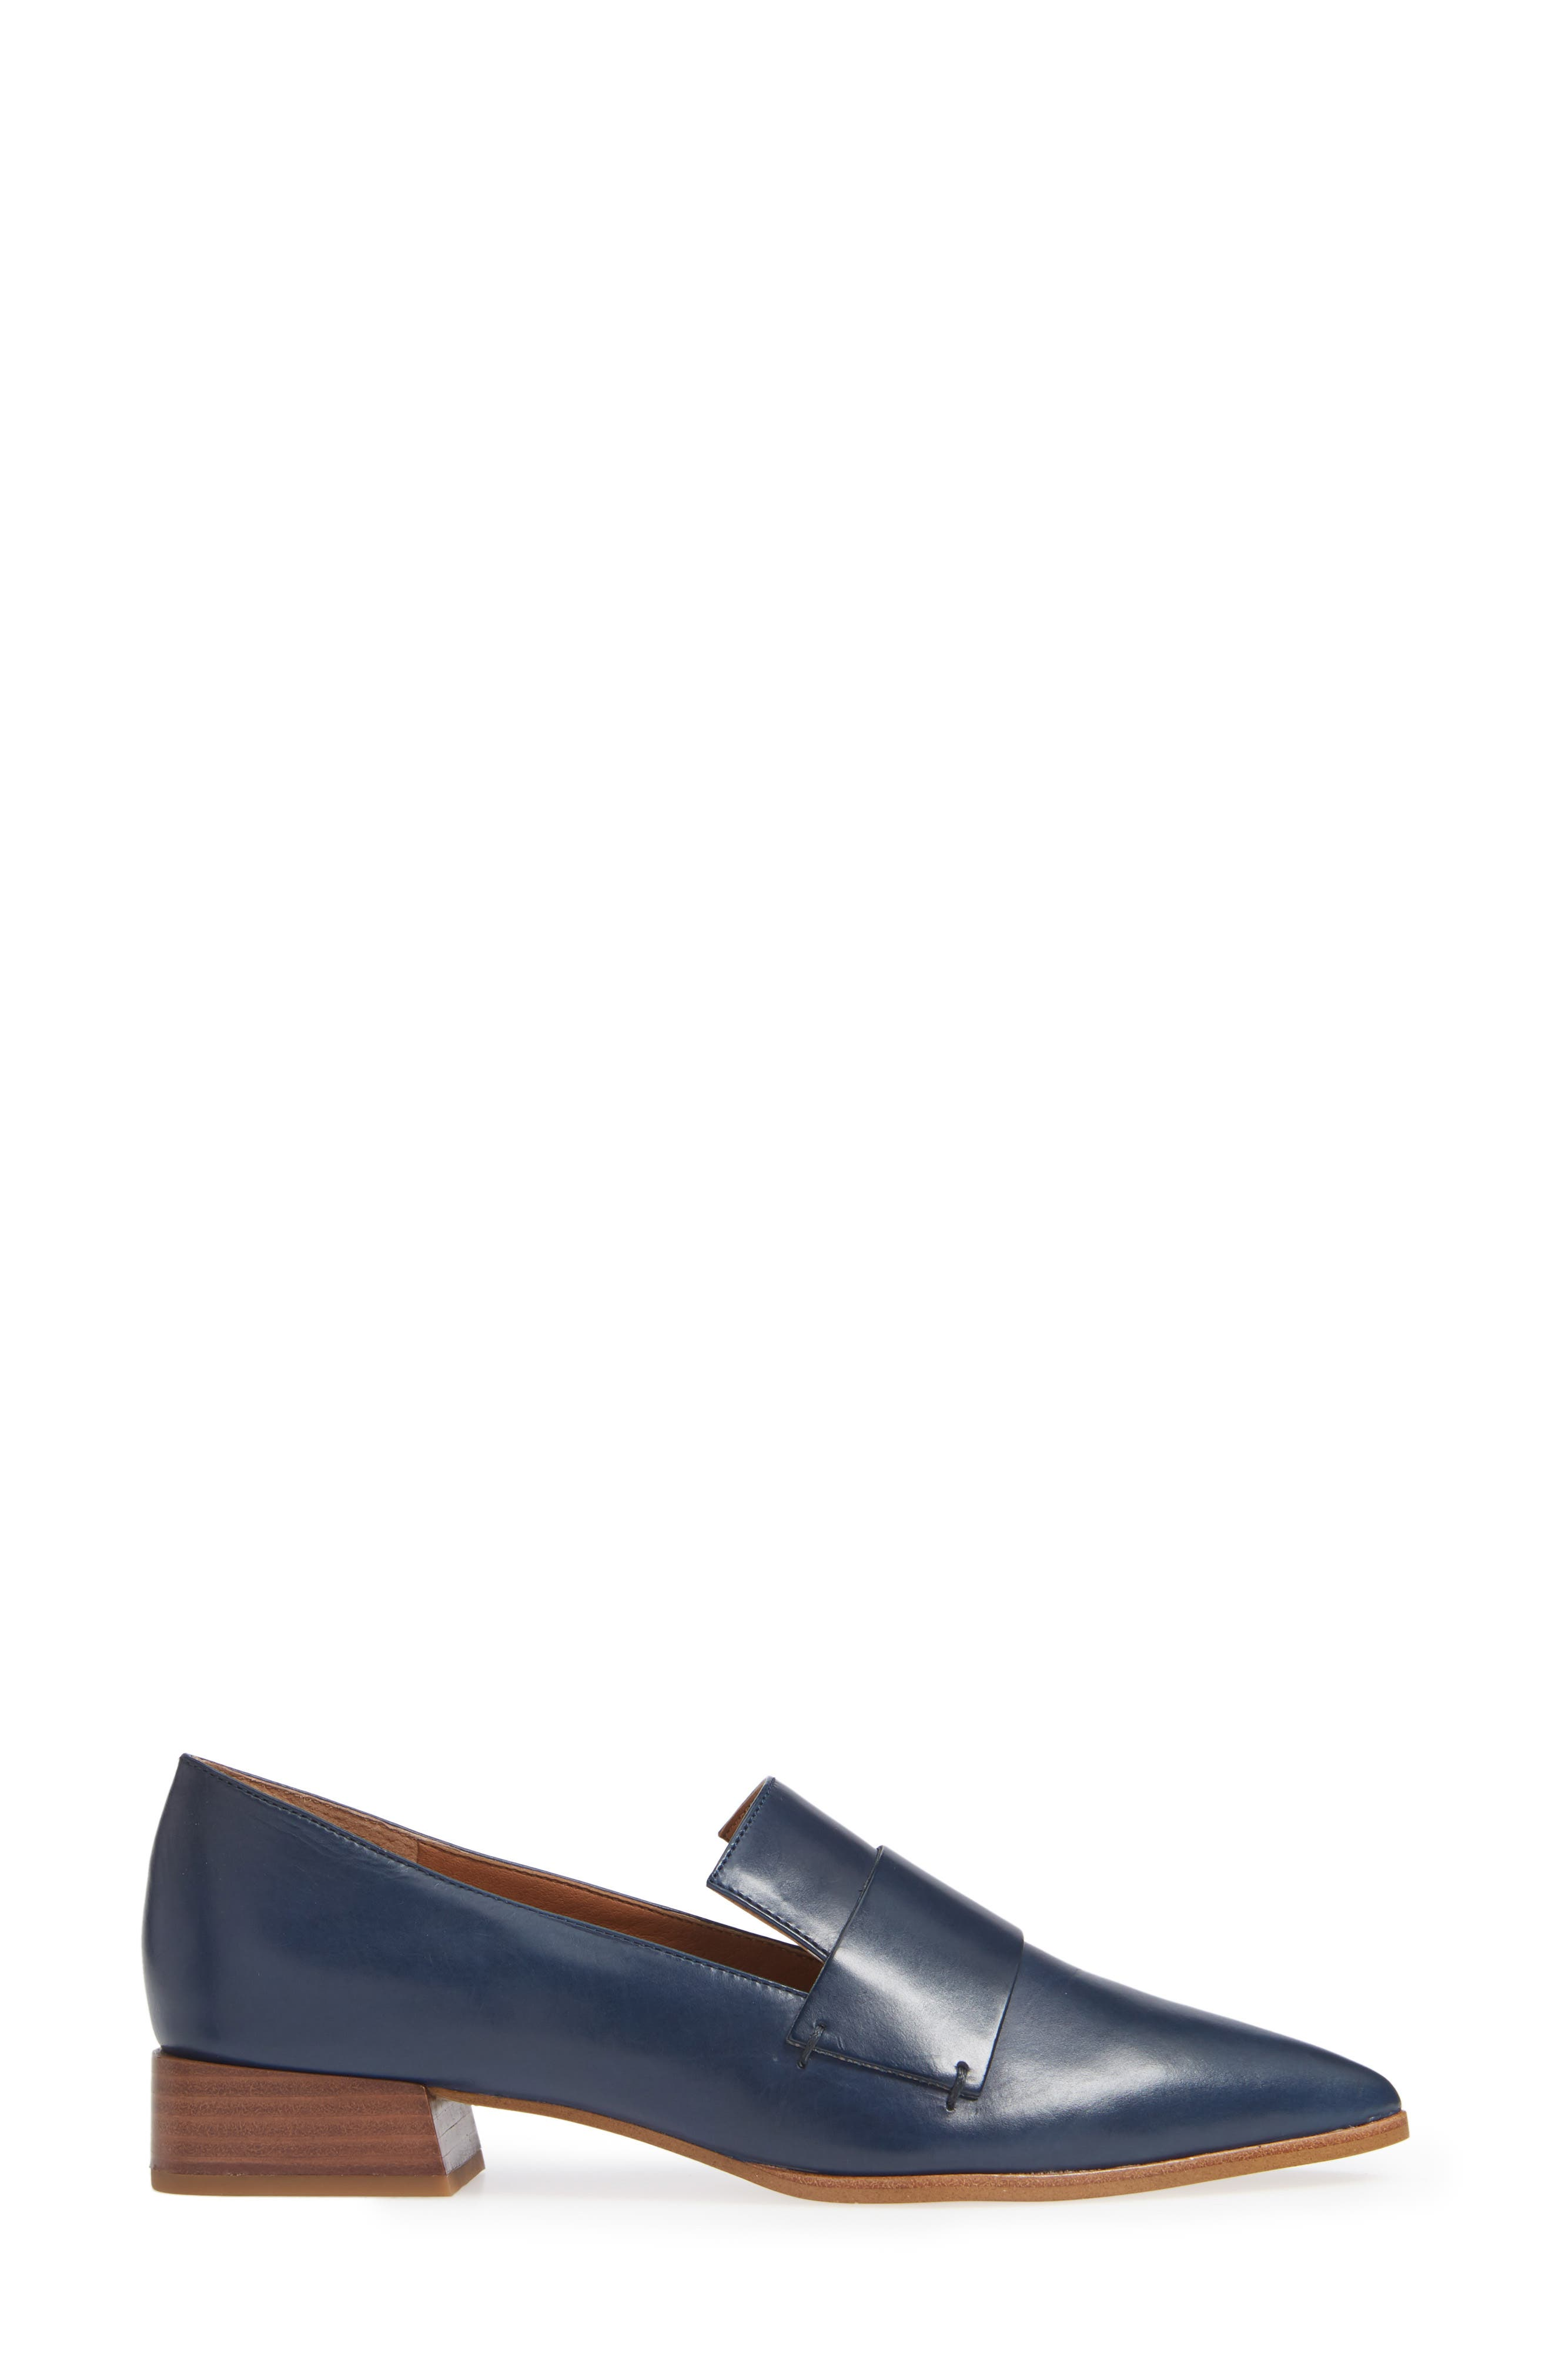 Nebby 2 Pointy Toe Loafer,                             Alternate thumbnail 3, color,                             NAVY LEATHER